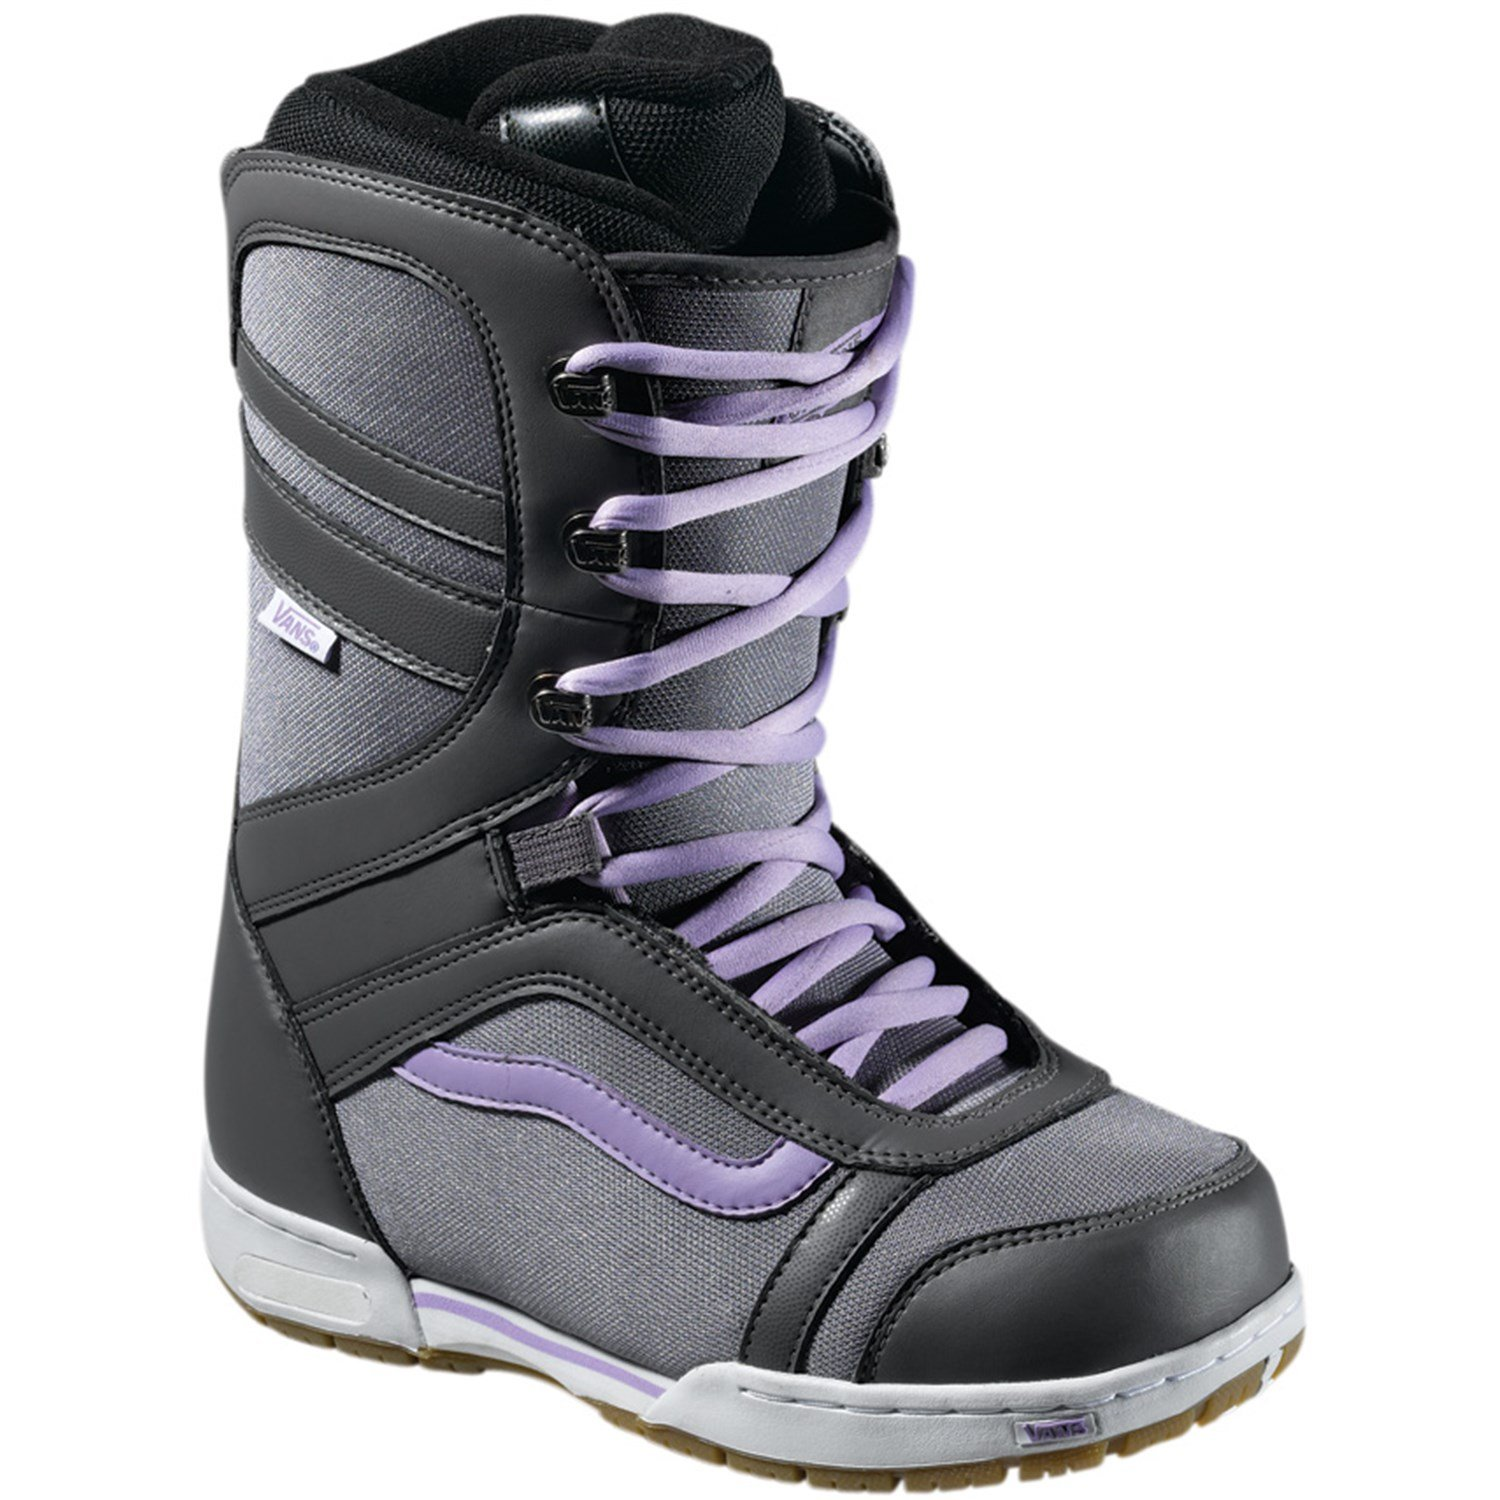 Elegant Vans The Vans Encore Snowboard Boot Is Perfect Out Of The Box And For Snowboarders Who Appreciate Getting More Bang For Their Buck Riders Who Look For The Instant Gratification Of Quick Function And Reliable Comfort As They Focus On Honing